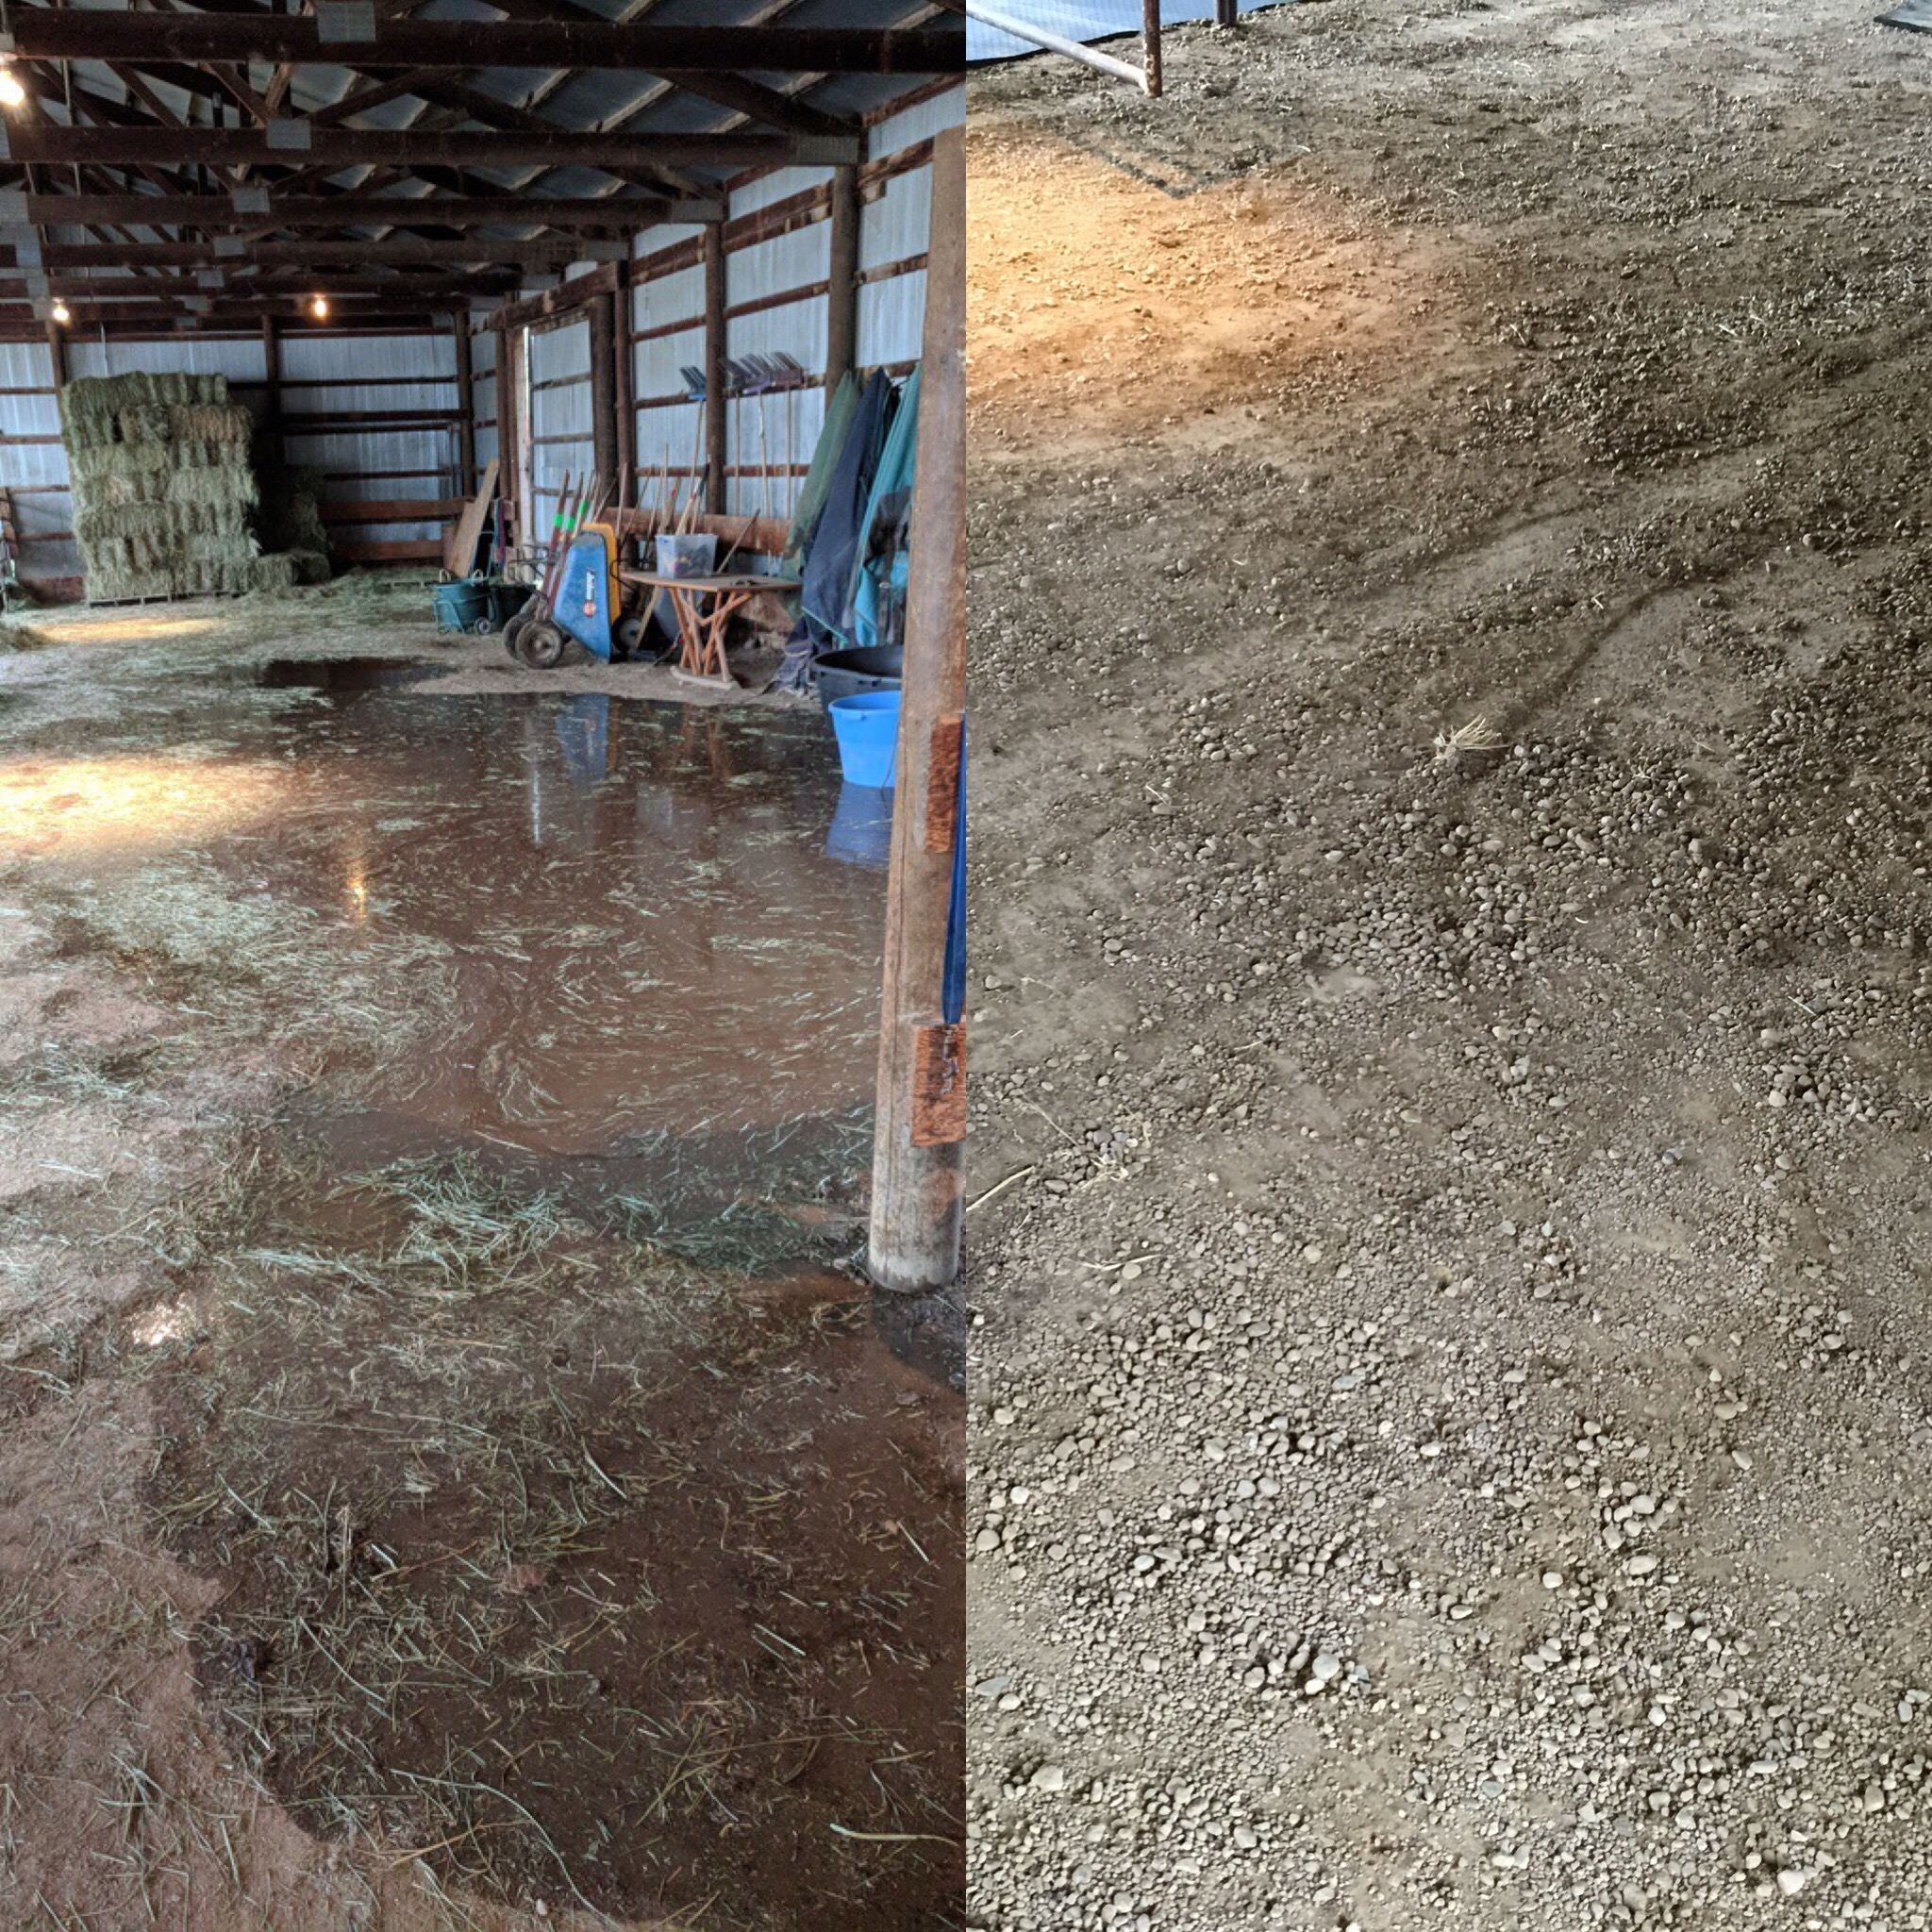 Before and after picture of the main barn. Water used to come into the barn every time it rained. The second picture was taken after a large rainstorm, and the ground stayed dry!